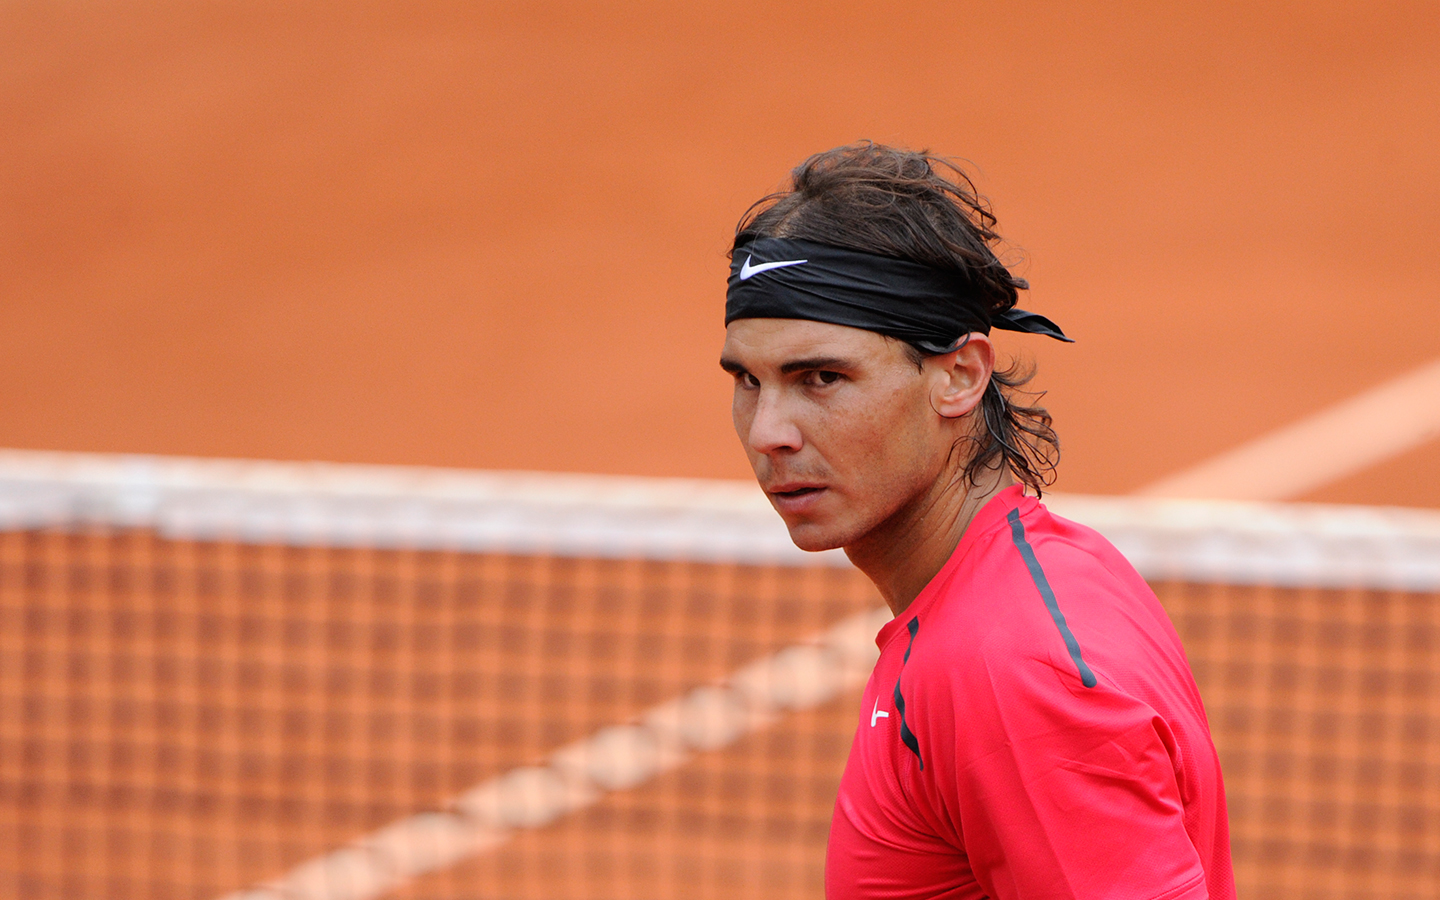 Rafael Nadal Wallpaper Pictures 60053 1440x900px